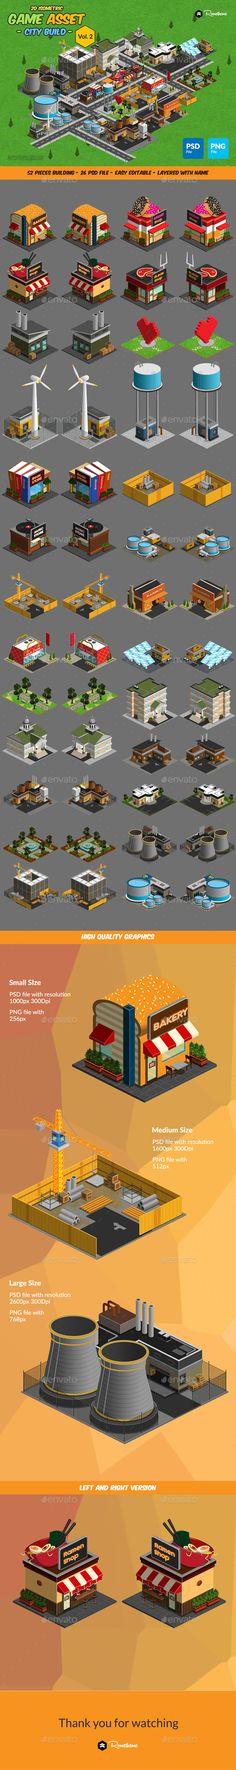 2D Isometric Game Asset - City Build Vol 2 - Tilesets Game Assets